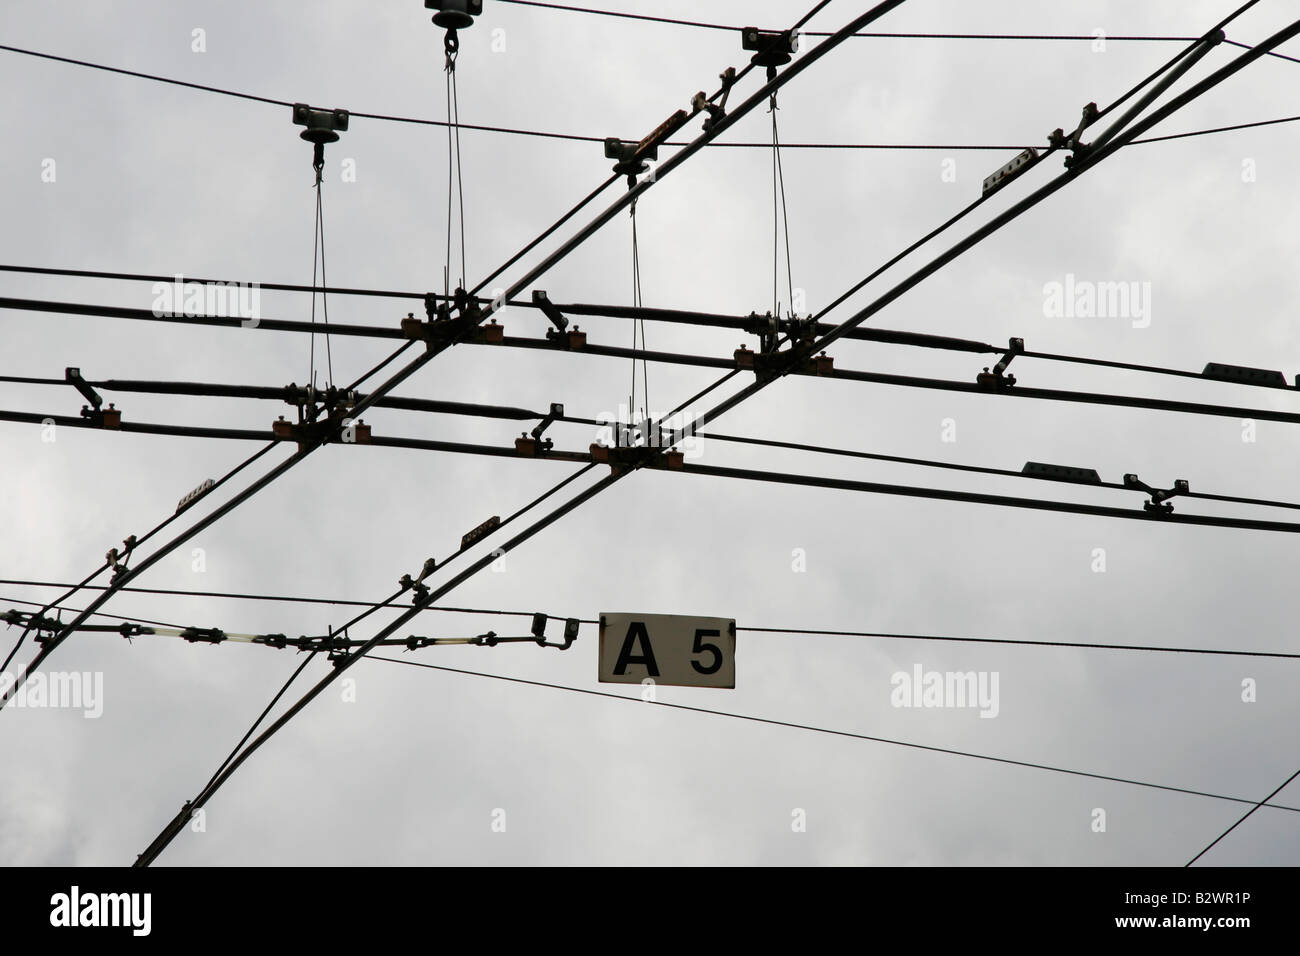 Cross Wires Stock Photos & Cross Wires Stock Images - Alamy